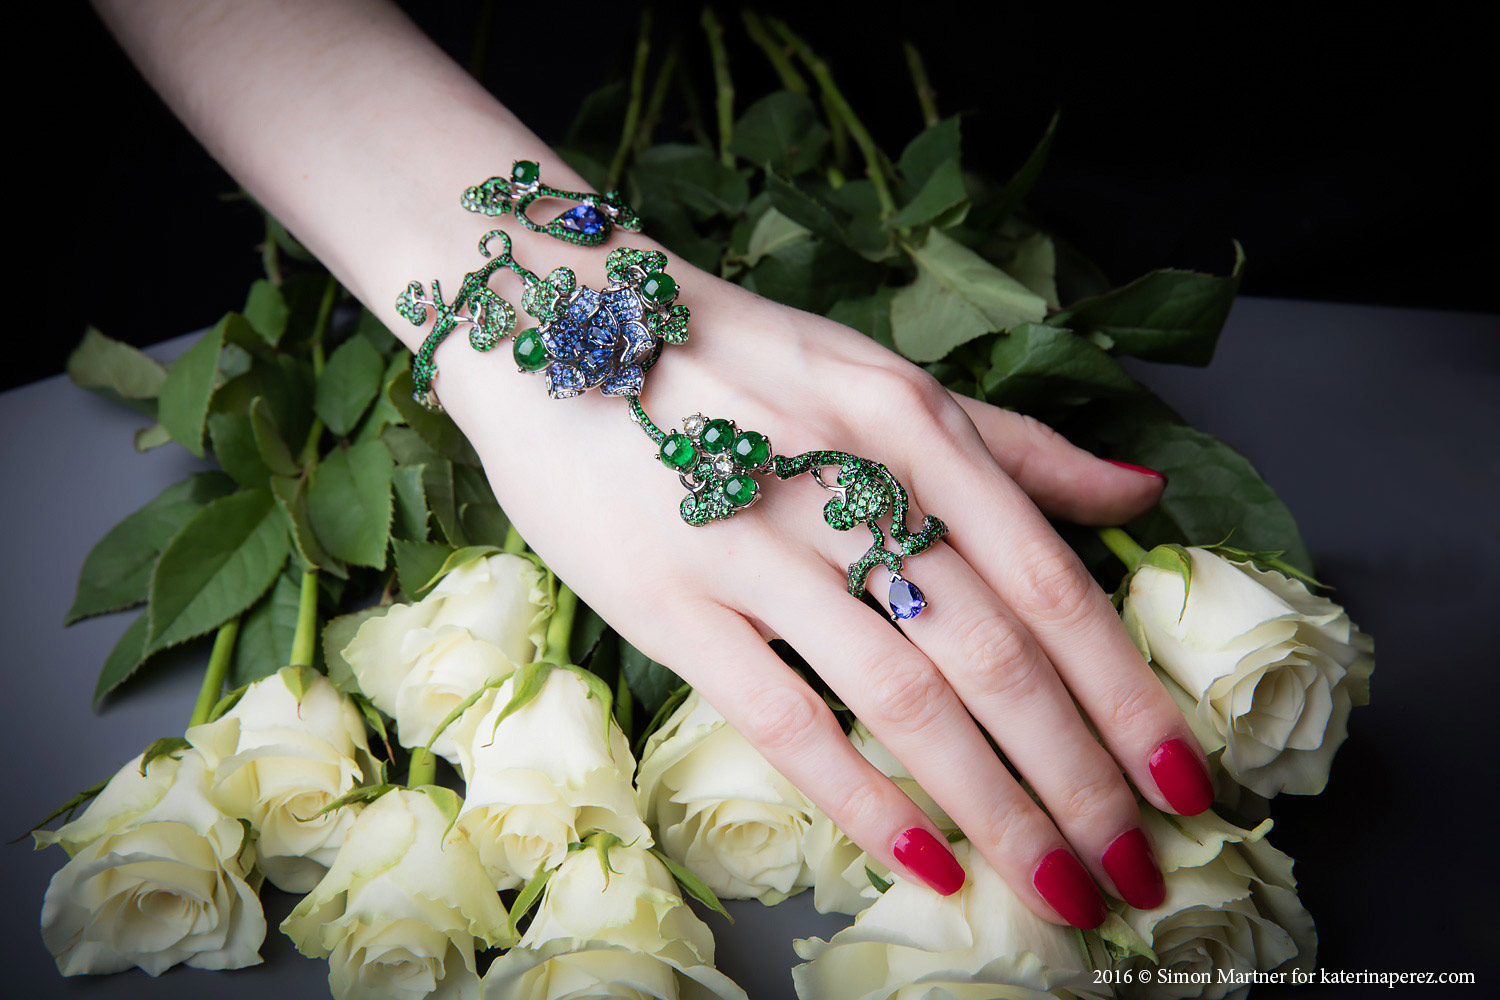 Wendy Yue tsavorite, tanzanite, blue sapphire, diamonds and 18K black gold hand bracelet - £21,120